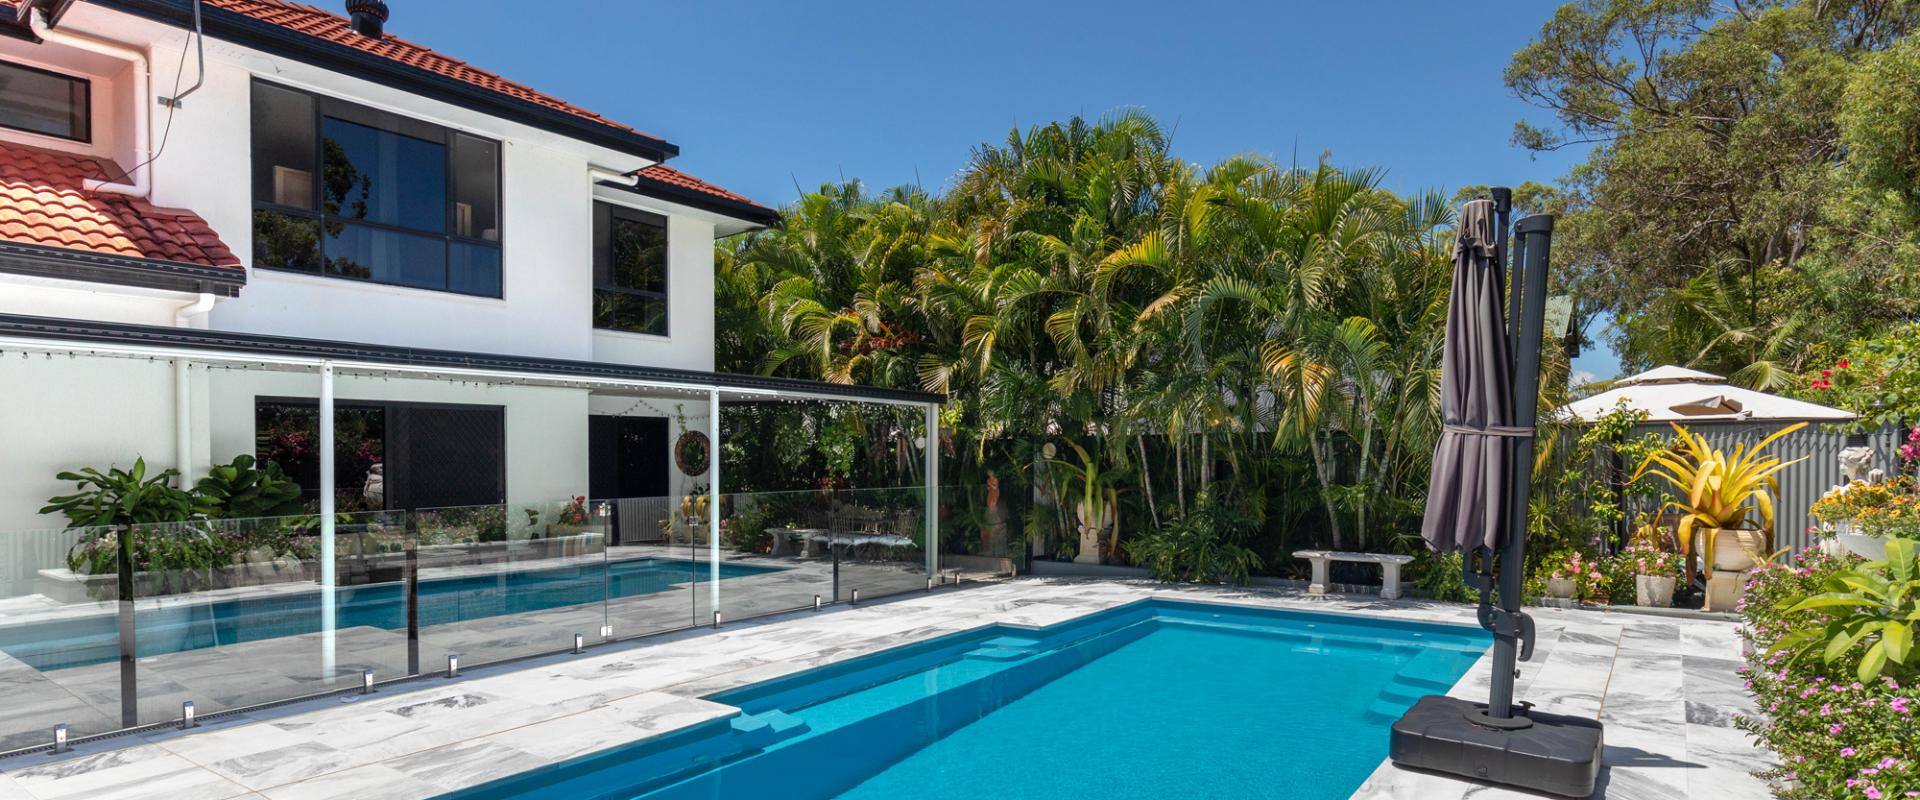 INDIVIDUAL TROPICAL OASIS WITHIN WALKING DISTANCE TO THE SANDY BEACH AND YOUR OWN PERSONAL REAR GATE ONTO THE LINKS CORRIDOR CYCLE PATH.